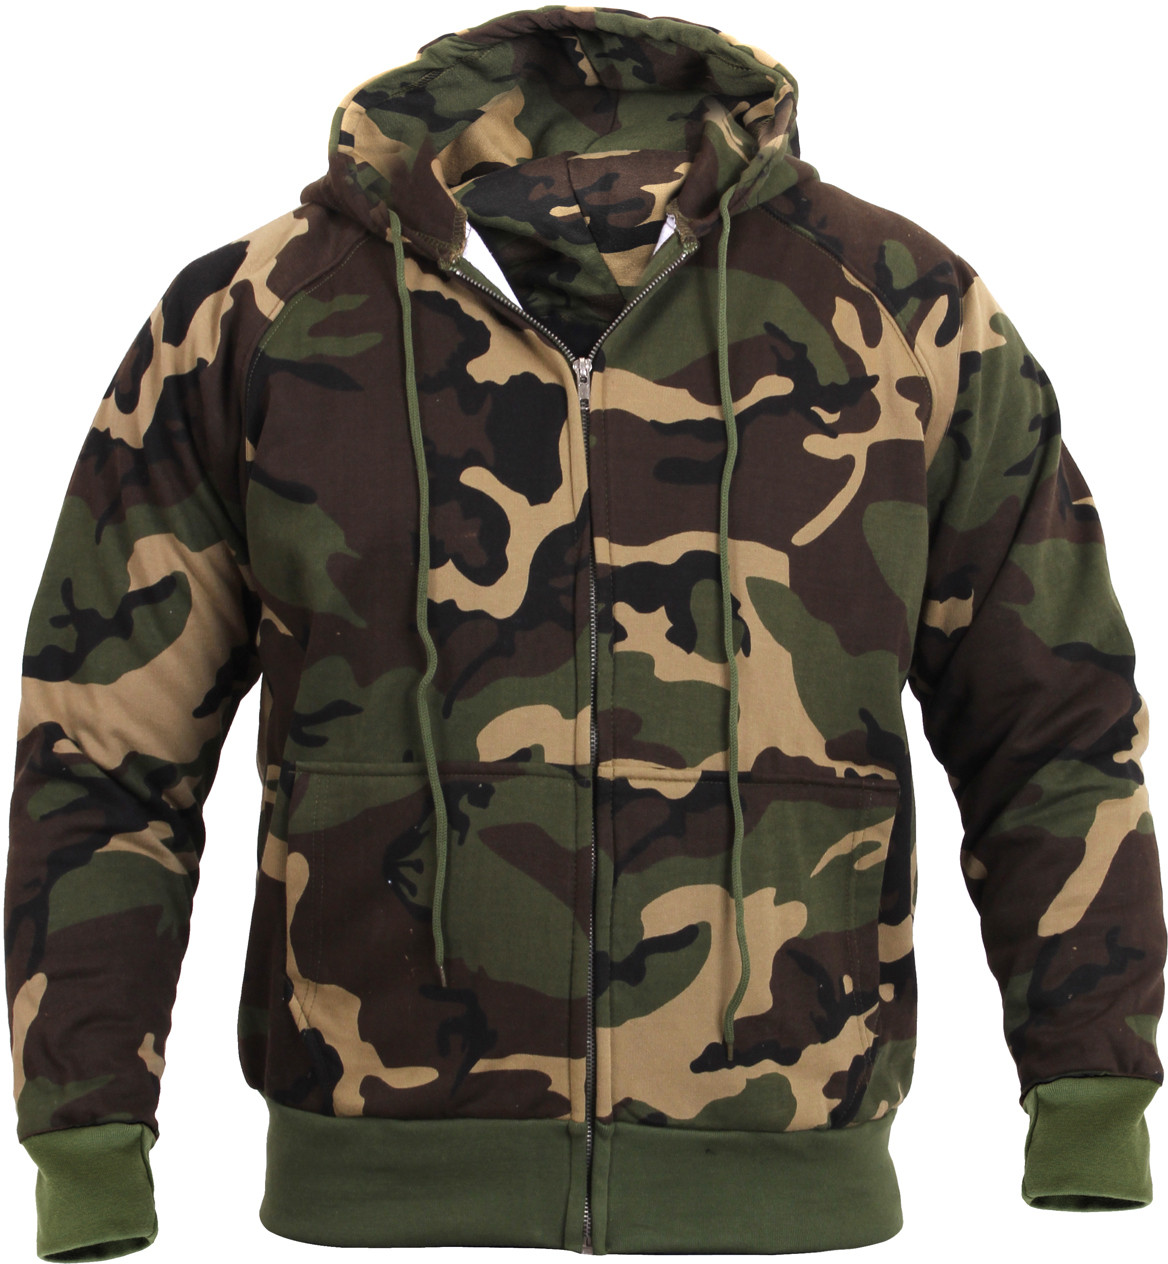 More Views. Woodland Camouflage Thermal Lined Zip Up Hoodie Sweatshirt ... 2a9268d806a